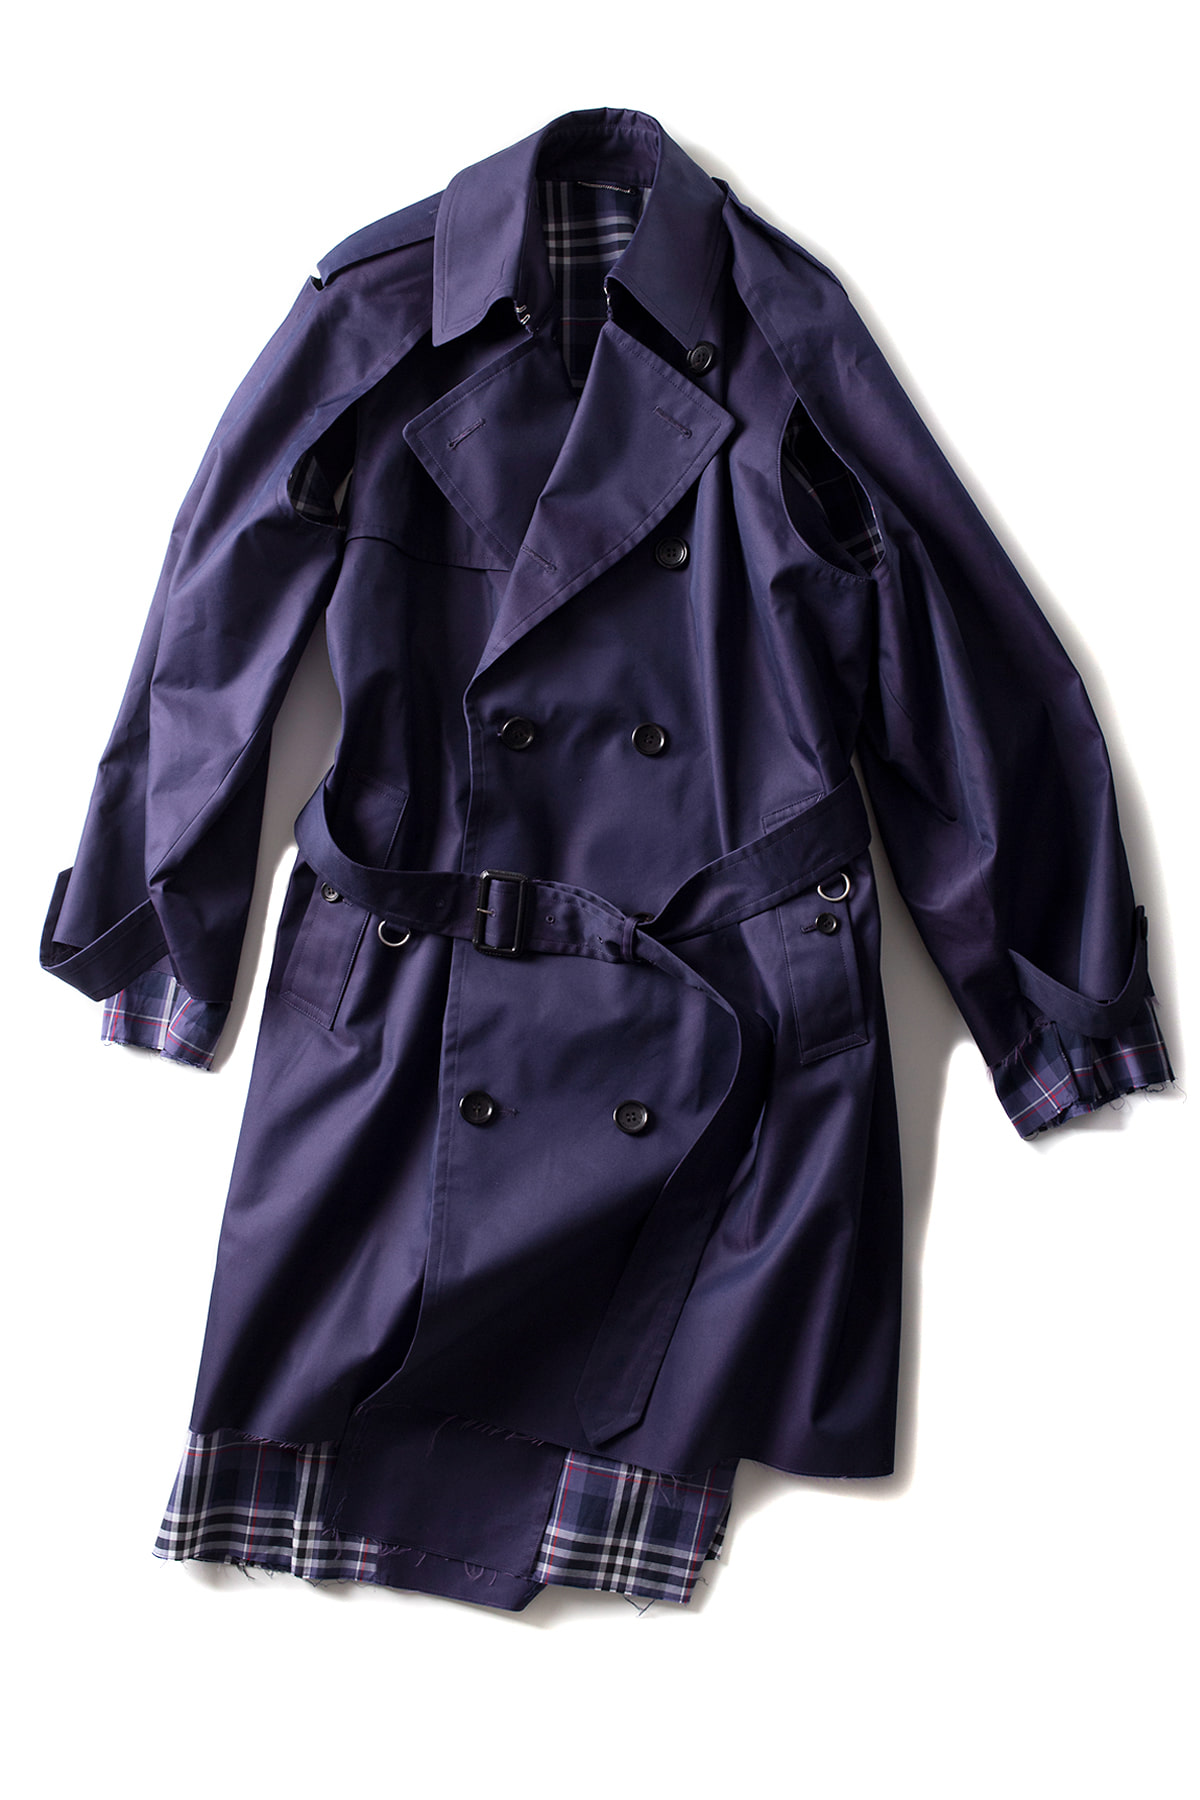 JOHN LAWRENCE SULLIVAN : Trench Coat (Navy)